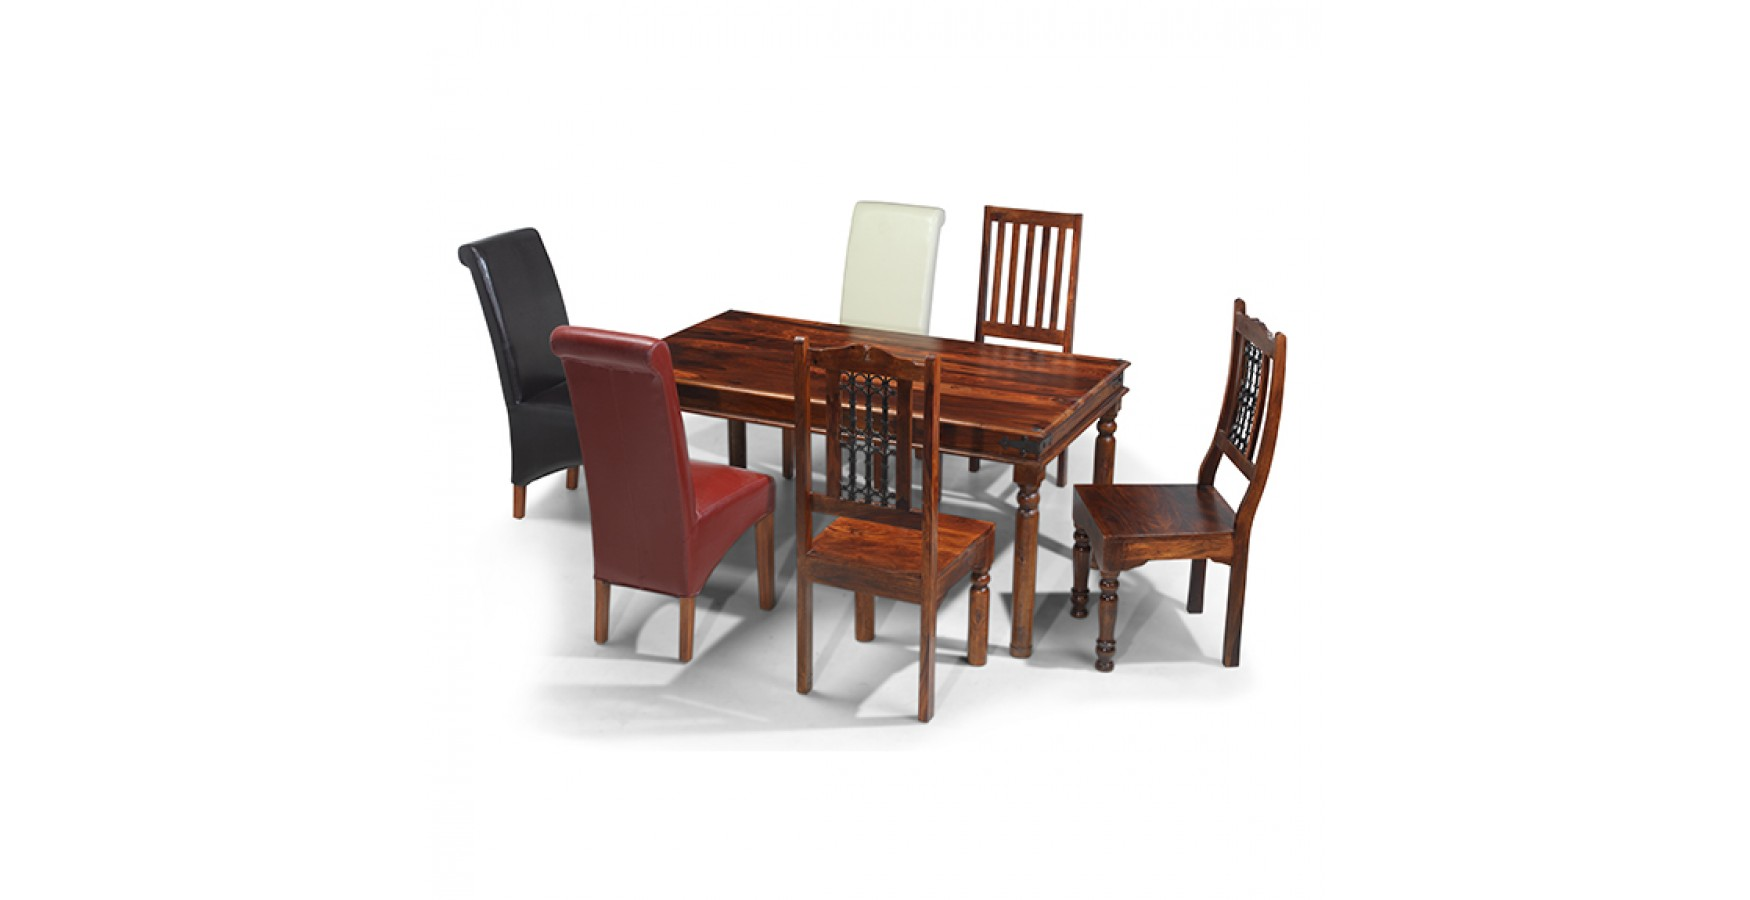 Jali sheesham 120 cm thakat dining table and 4 chairs for 120cm dining table with 4 chairs